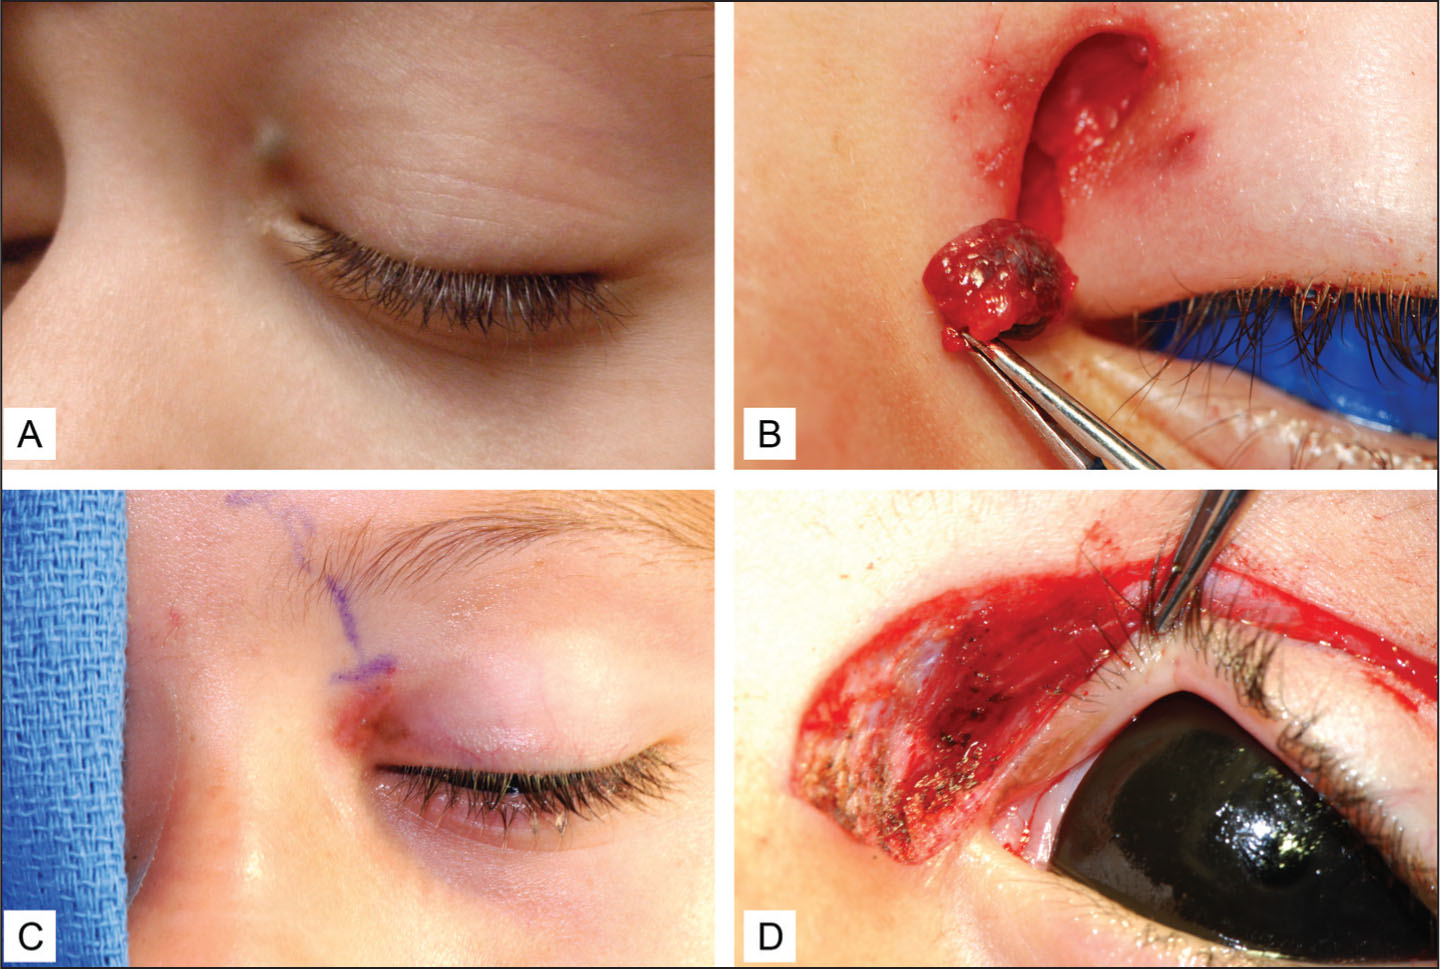 (A) Preoperative Photograph of Initial Pigmented Lesion. (B) Intraoperative Photograph from First Excisional Biopsy. (C) Preoperative Photograph of Non-Discrete Pigmentation Around the Original Biopsy Prior to the Re-Excision. (D) Intraoperative Photograph of the Re-Excision.